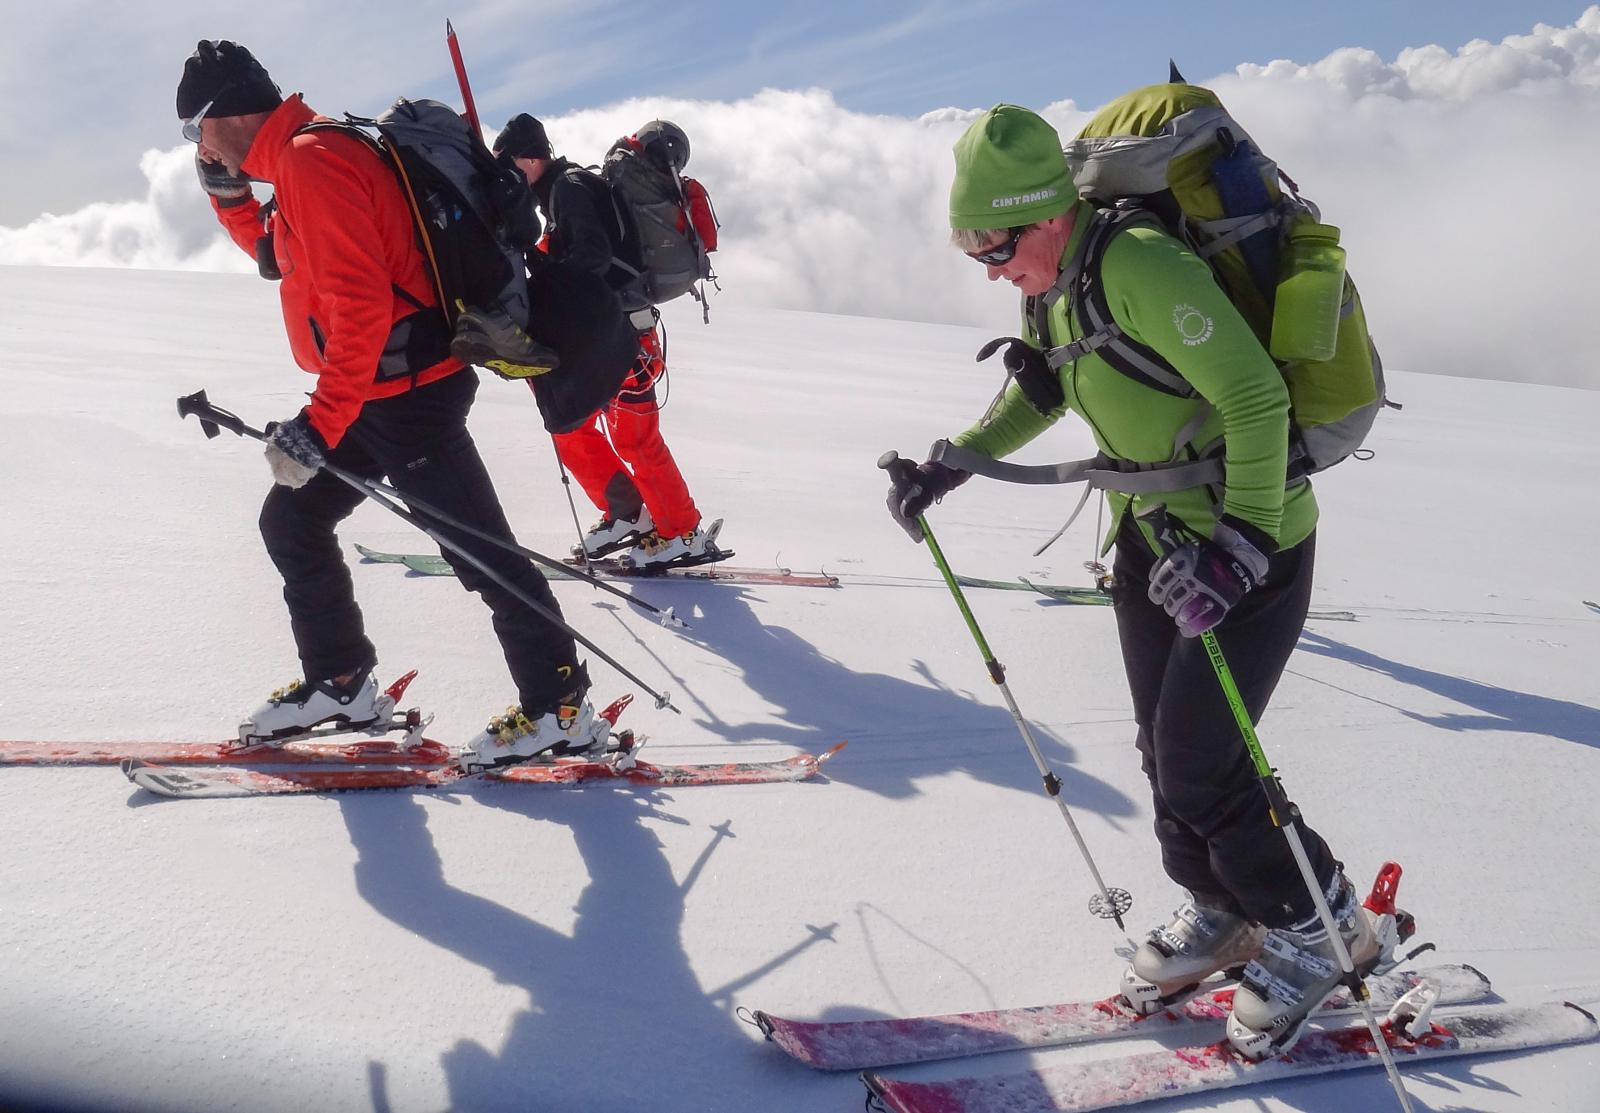 Foto de Backcountry skiing up and downSandfell Hvannadalshnukur 05-16-2014 15:11:17